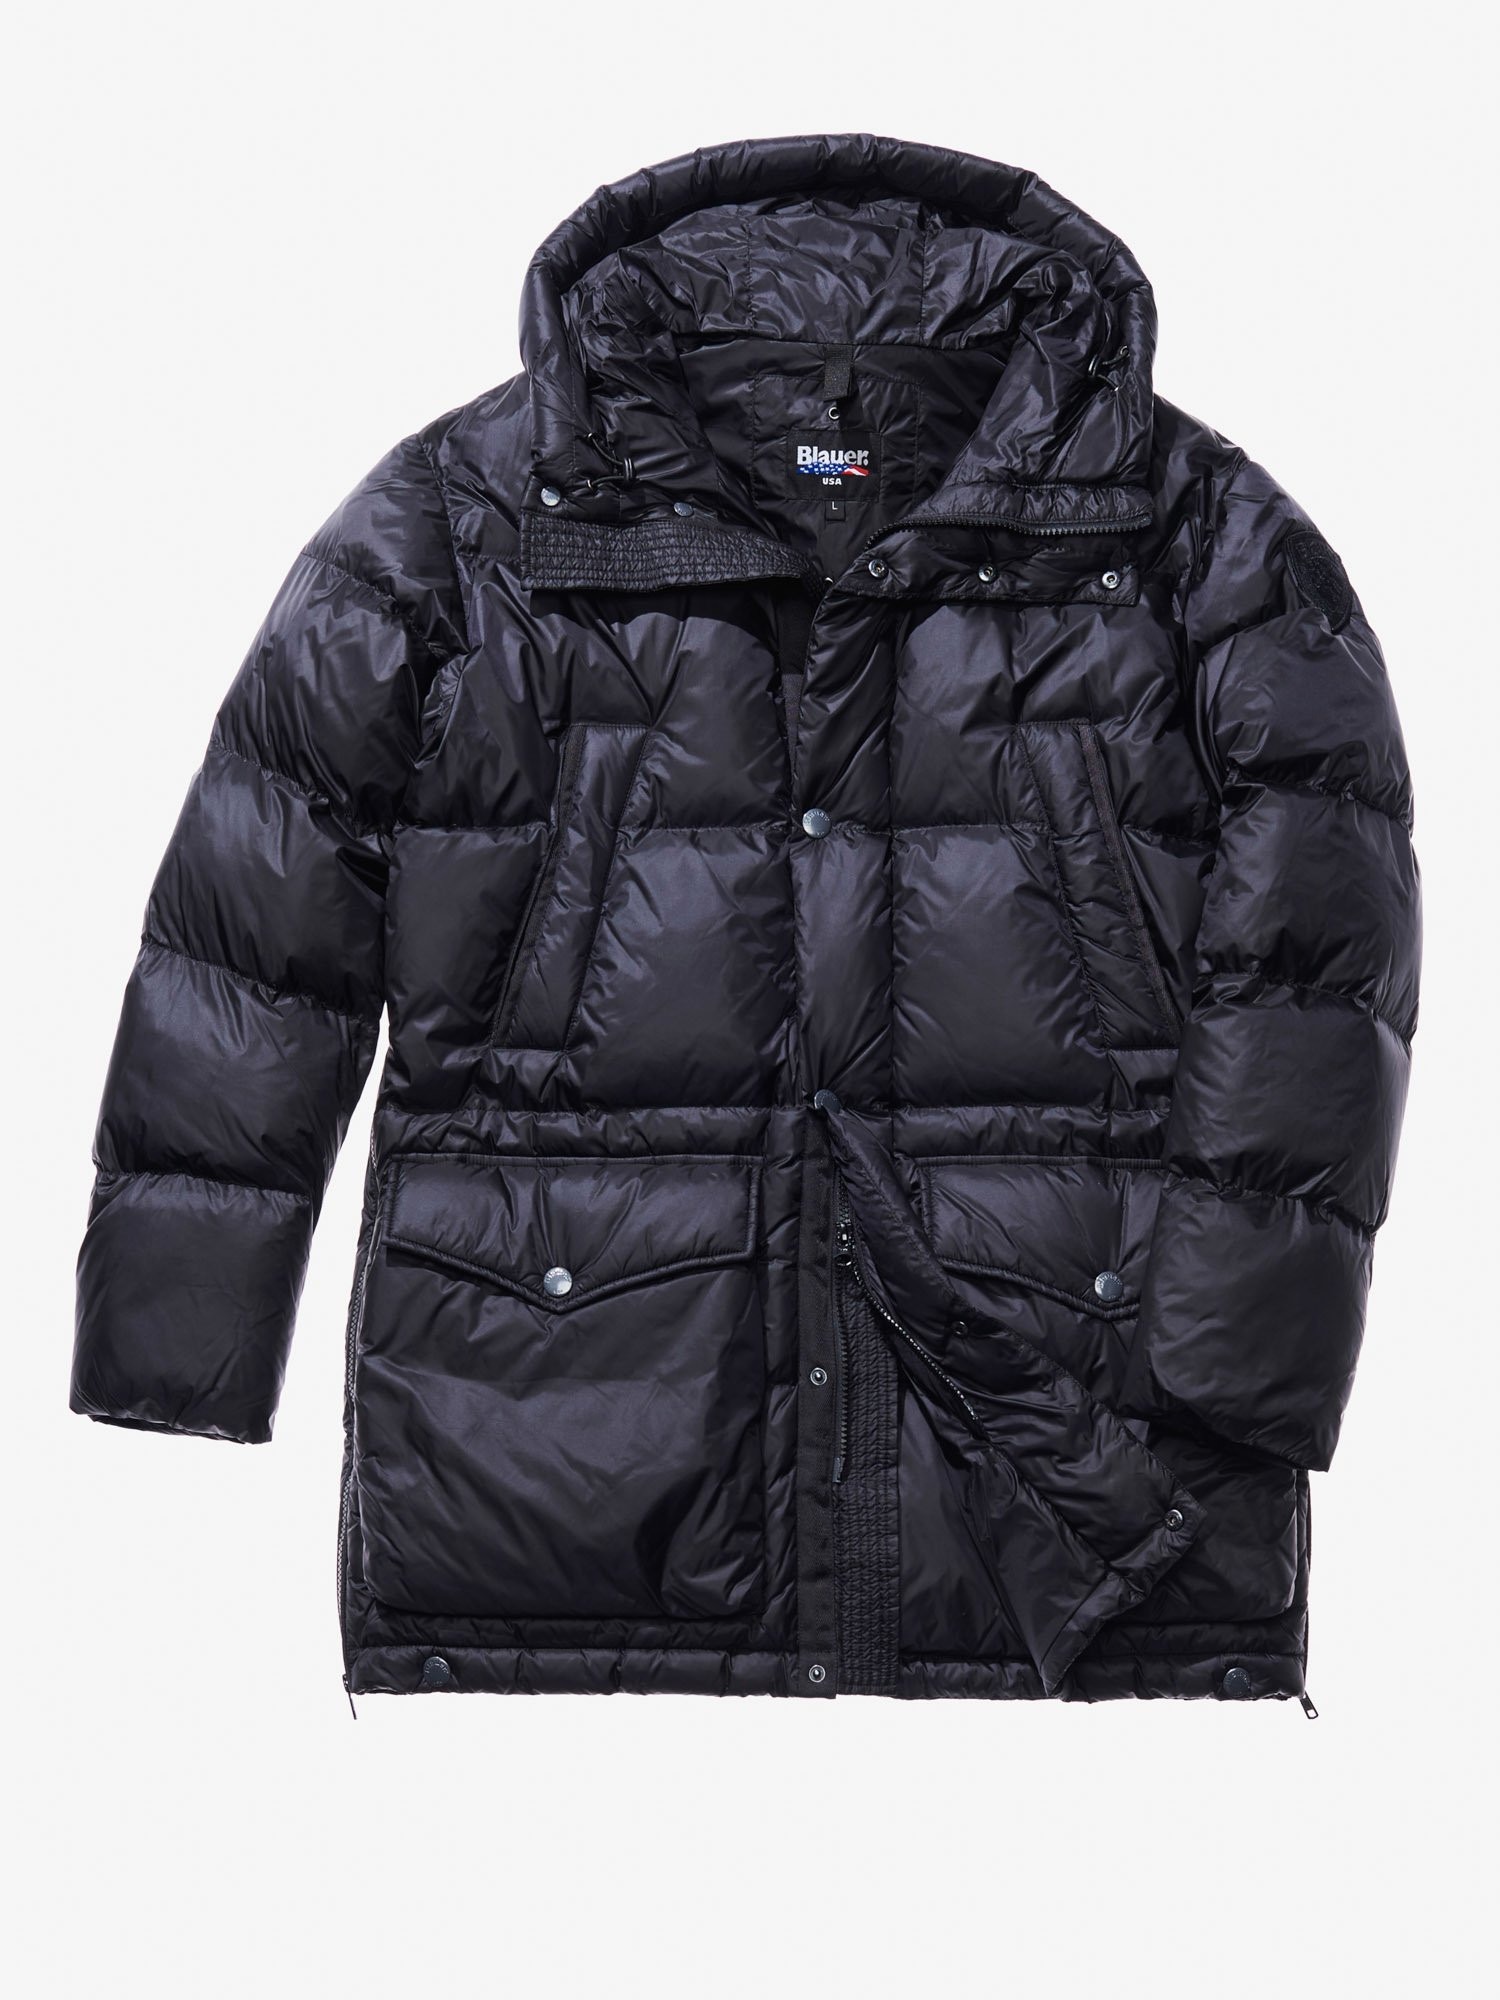 DAVIDE DOWN-BLEND COAT - Blauer